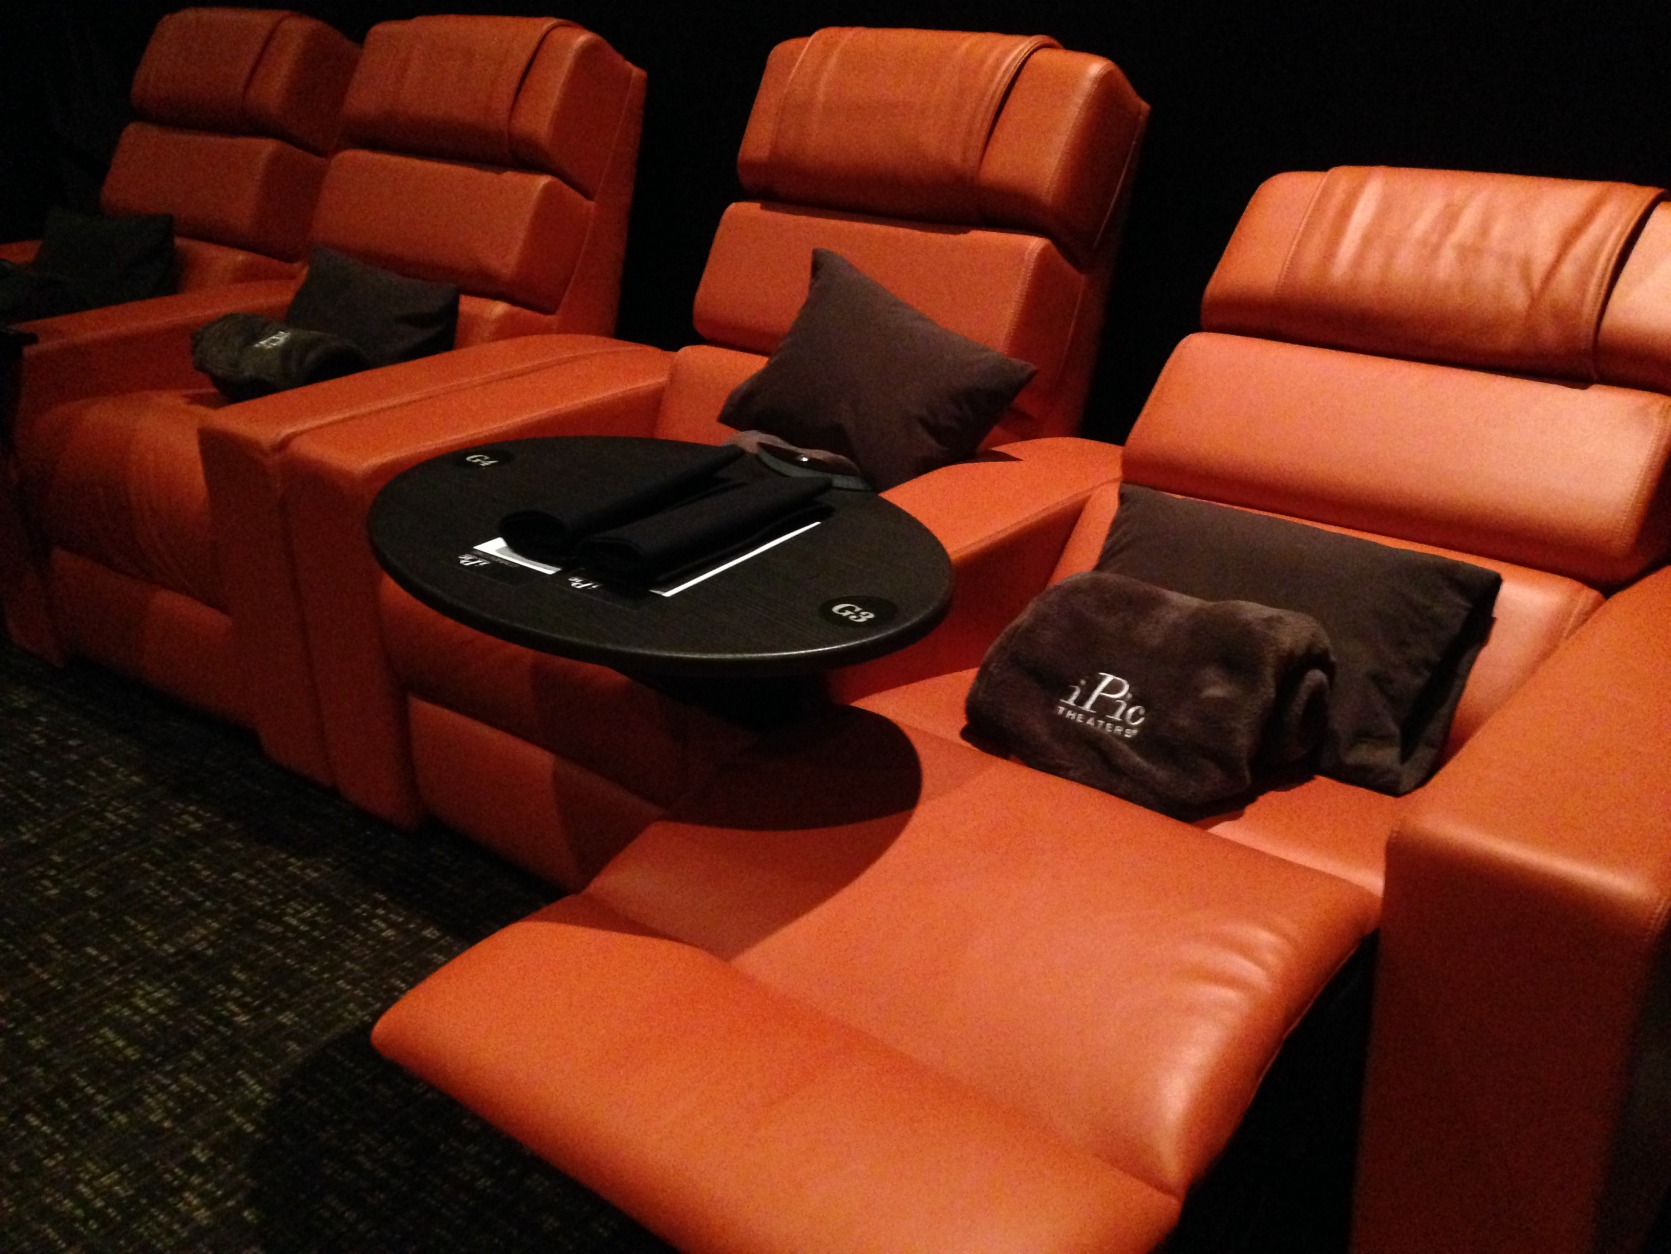 Second upscale movie theater debuts in Bethesda